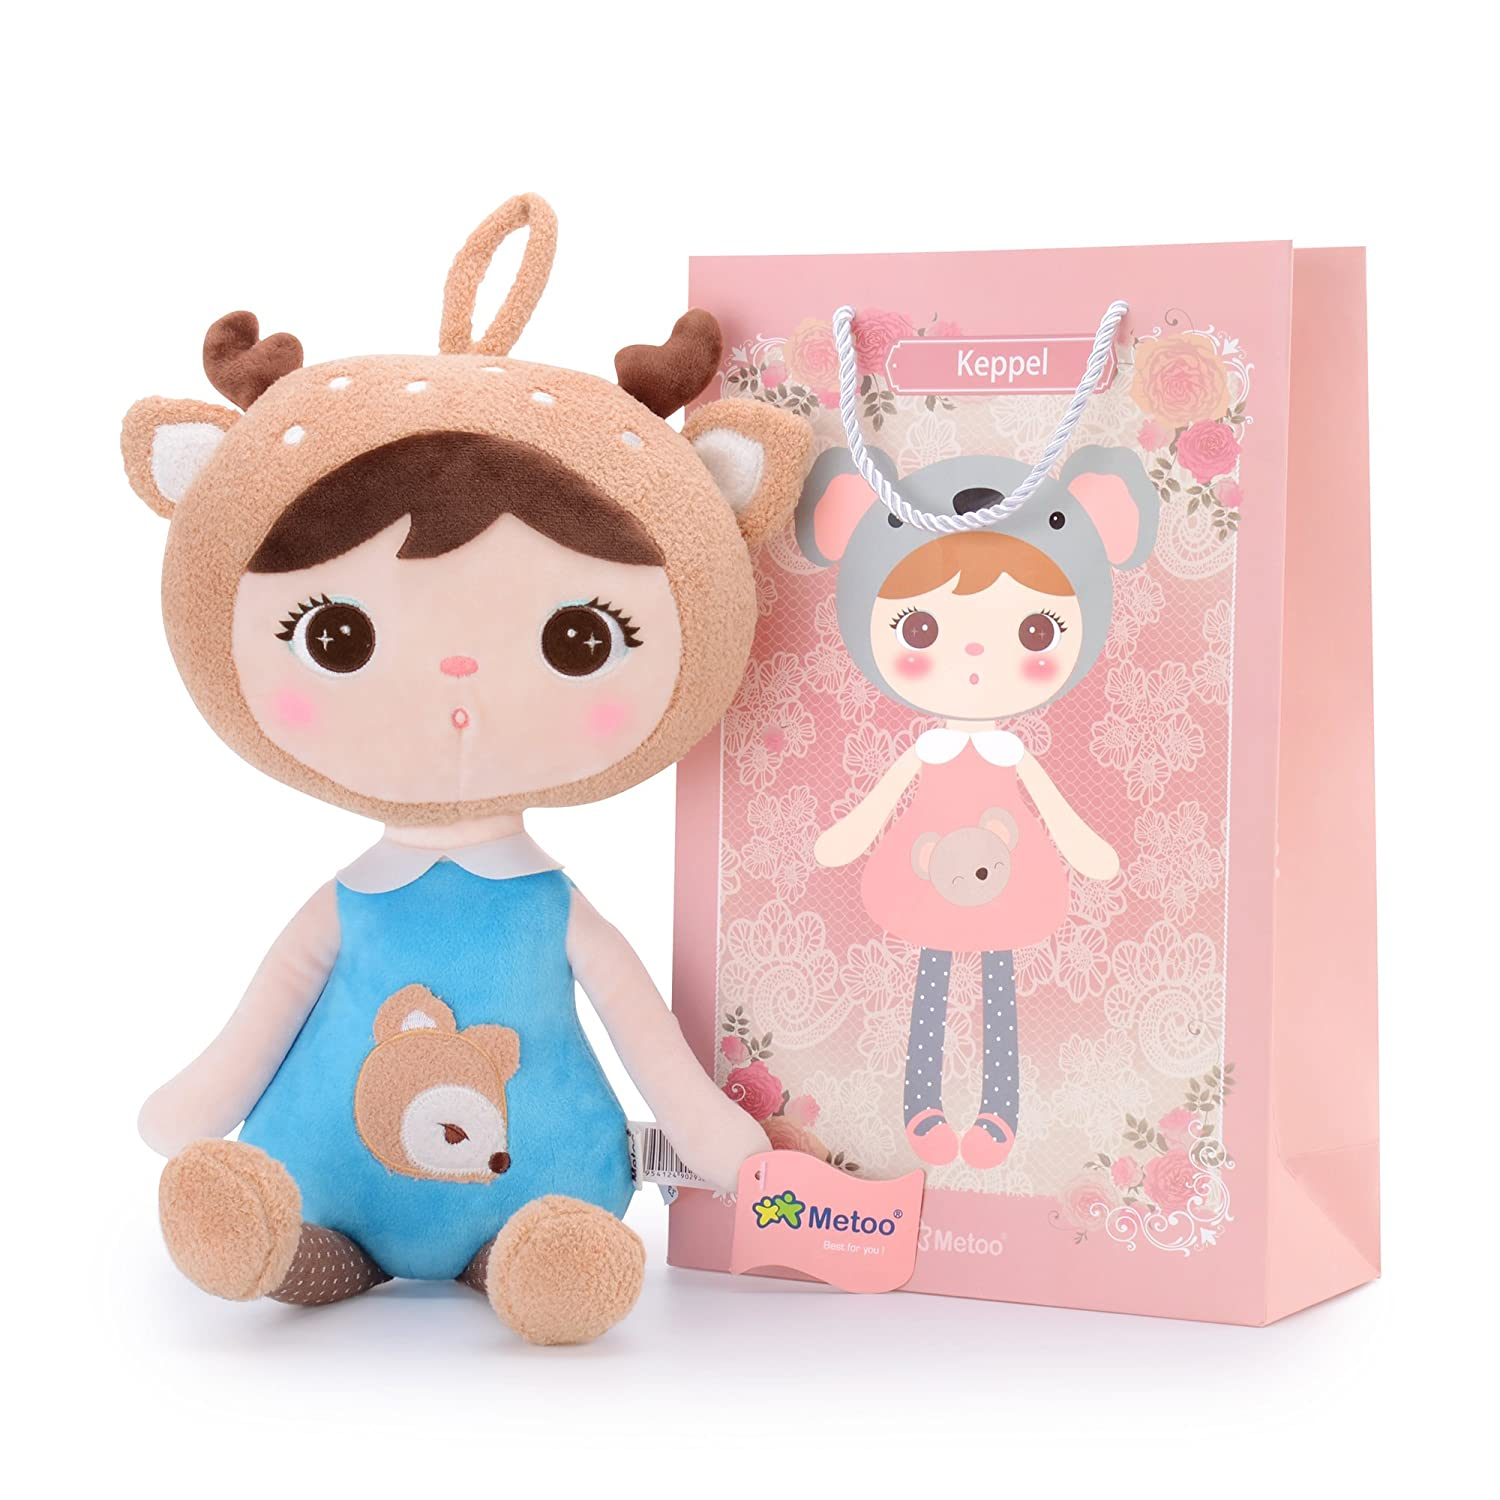 Me Too Keppel Stuffed Deer Baby Girl Dolls Plush Toys 18 Inches